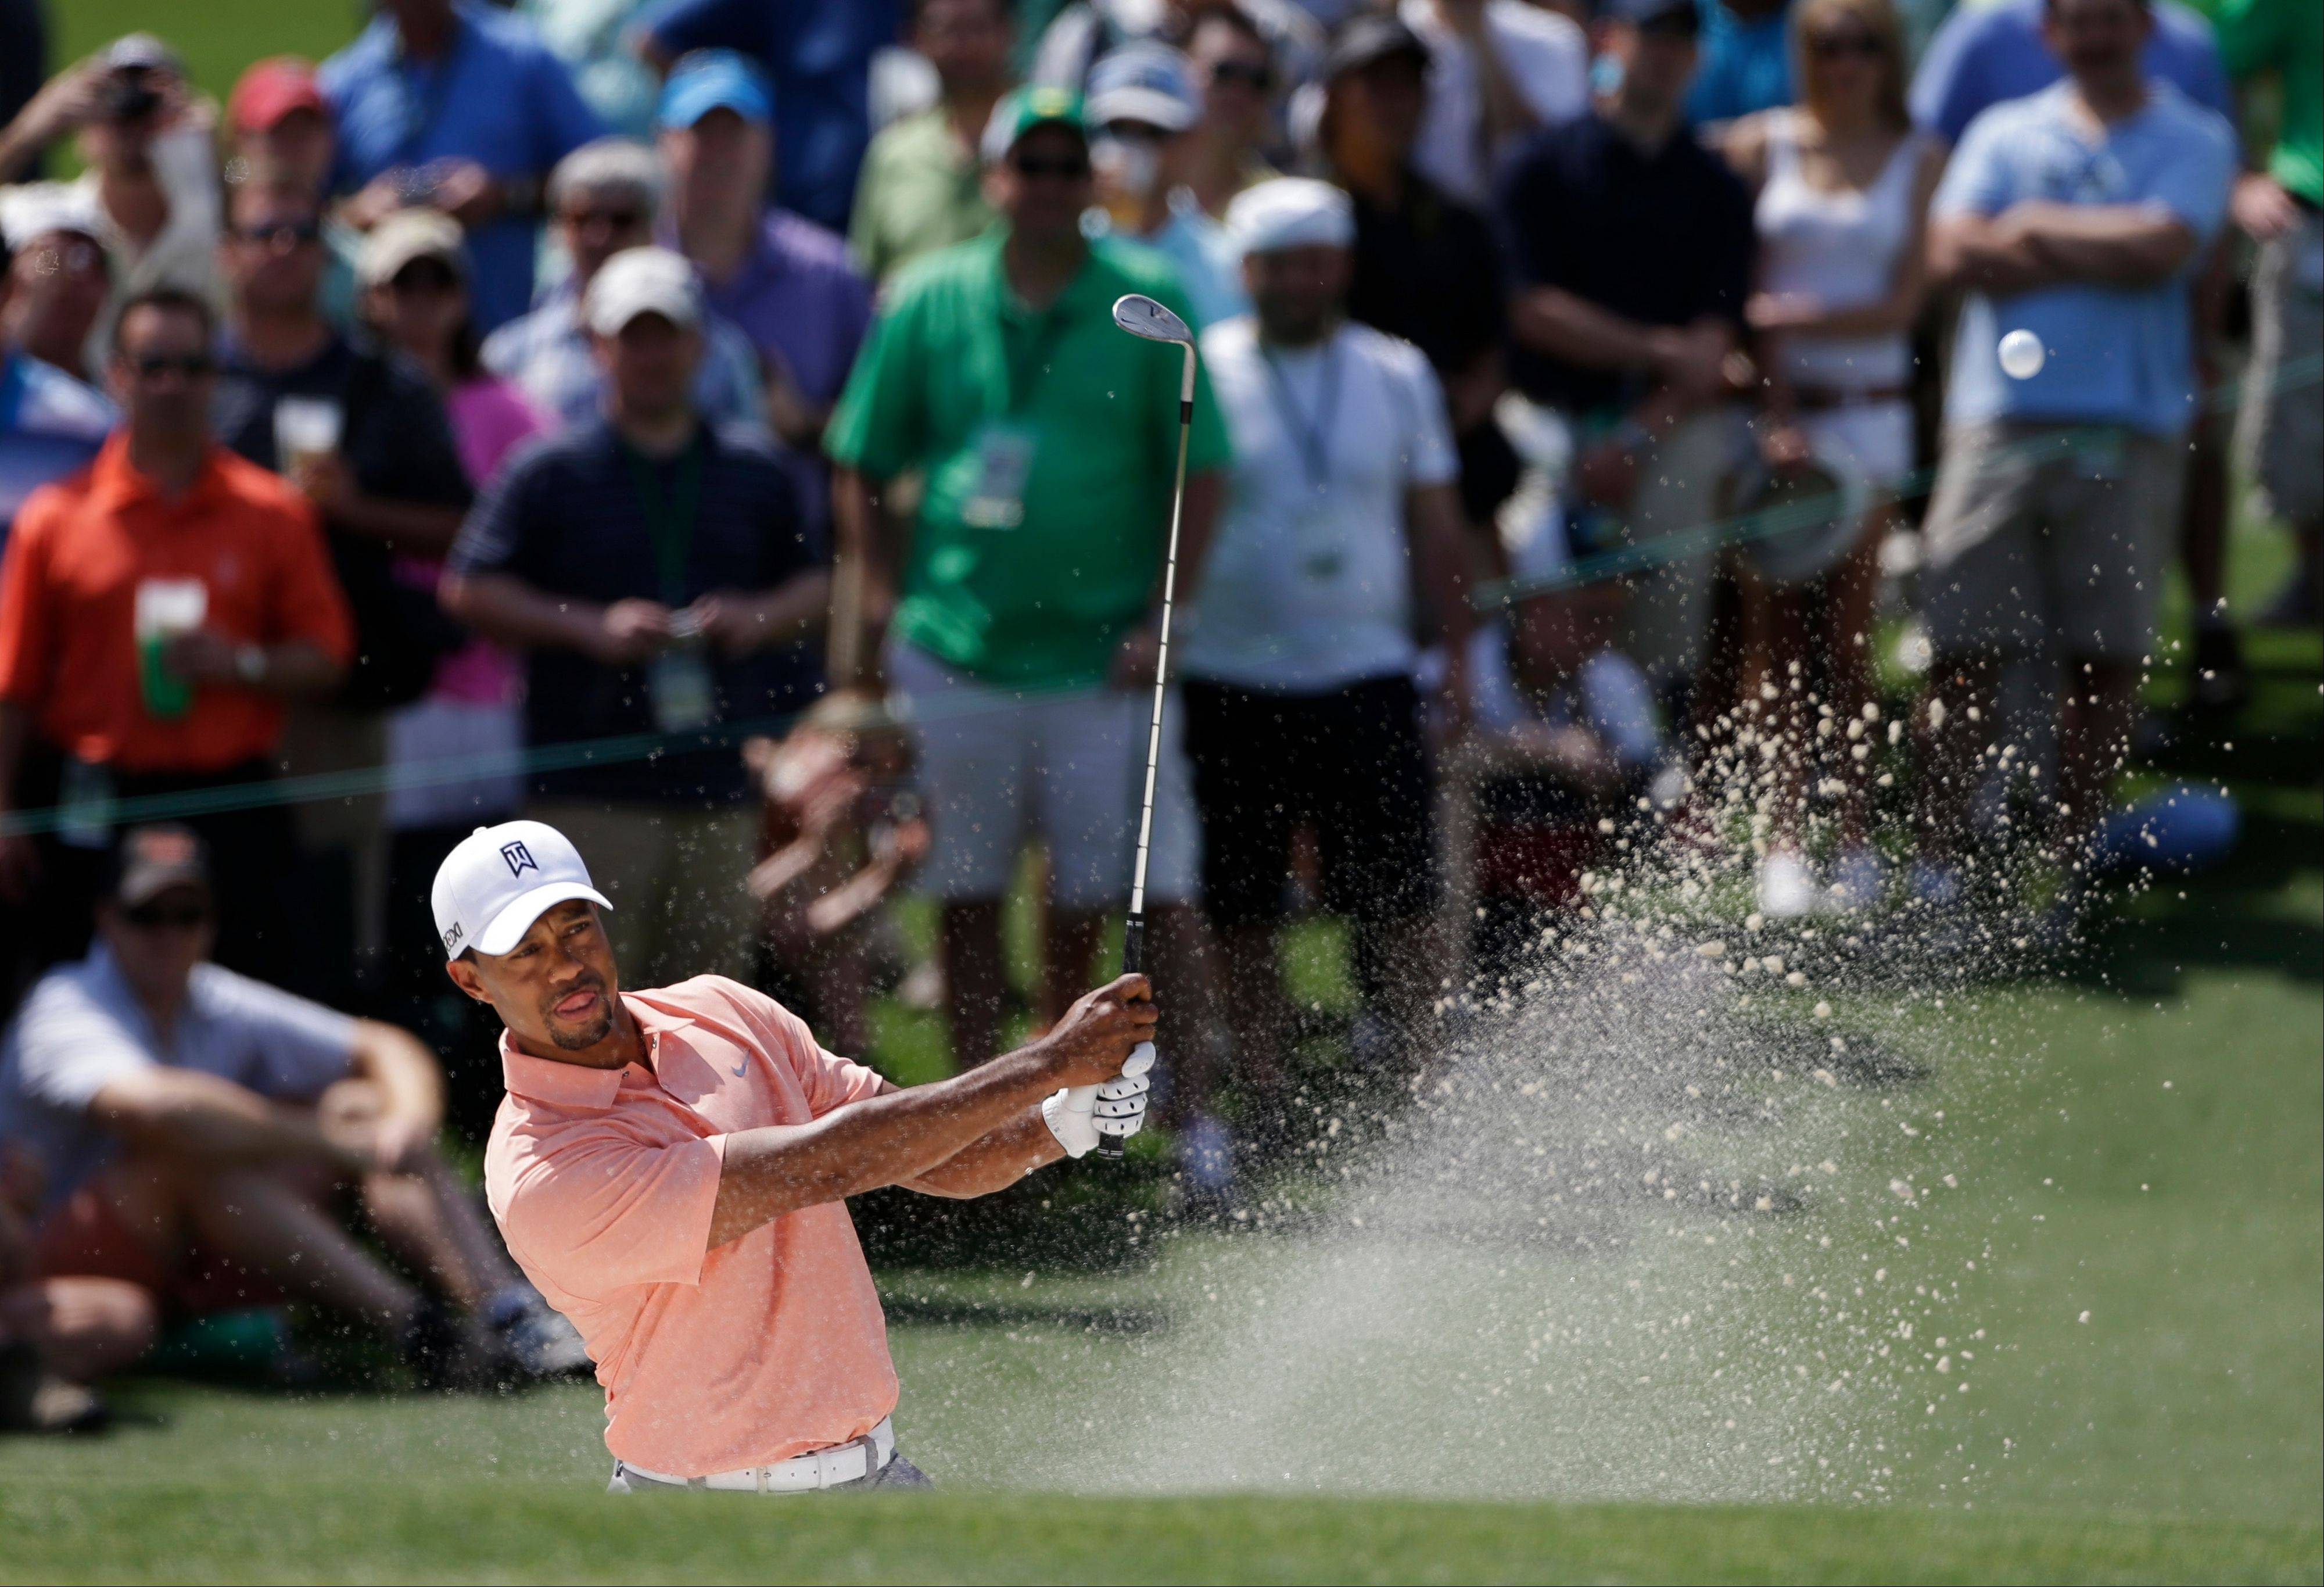 Tiger Woods watches his shot out of a bunker on the second hole during a practice round for the Masters golf tournament Tuesday, April 9, 2013, in Augusta, Ga.